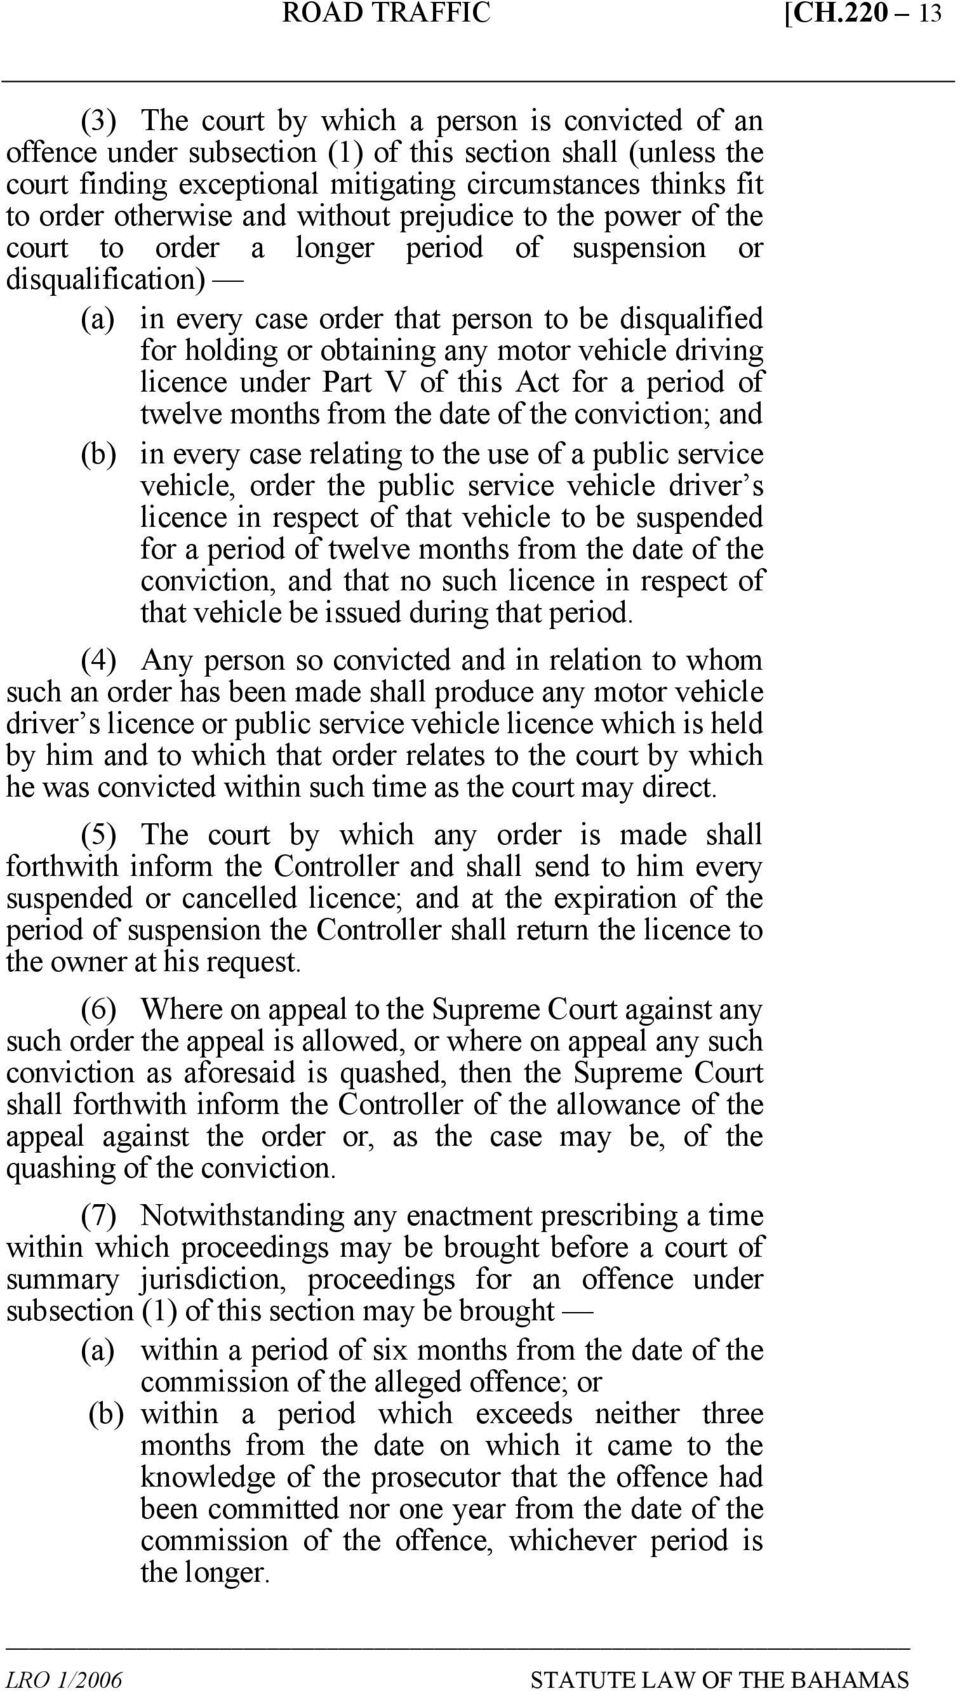 any motor vehicle driving licence under Part V of this Act for a period of twelve months from the date of the conviction; and (b) in every case relating to the use of a public service vehicle, order